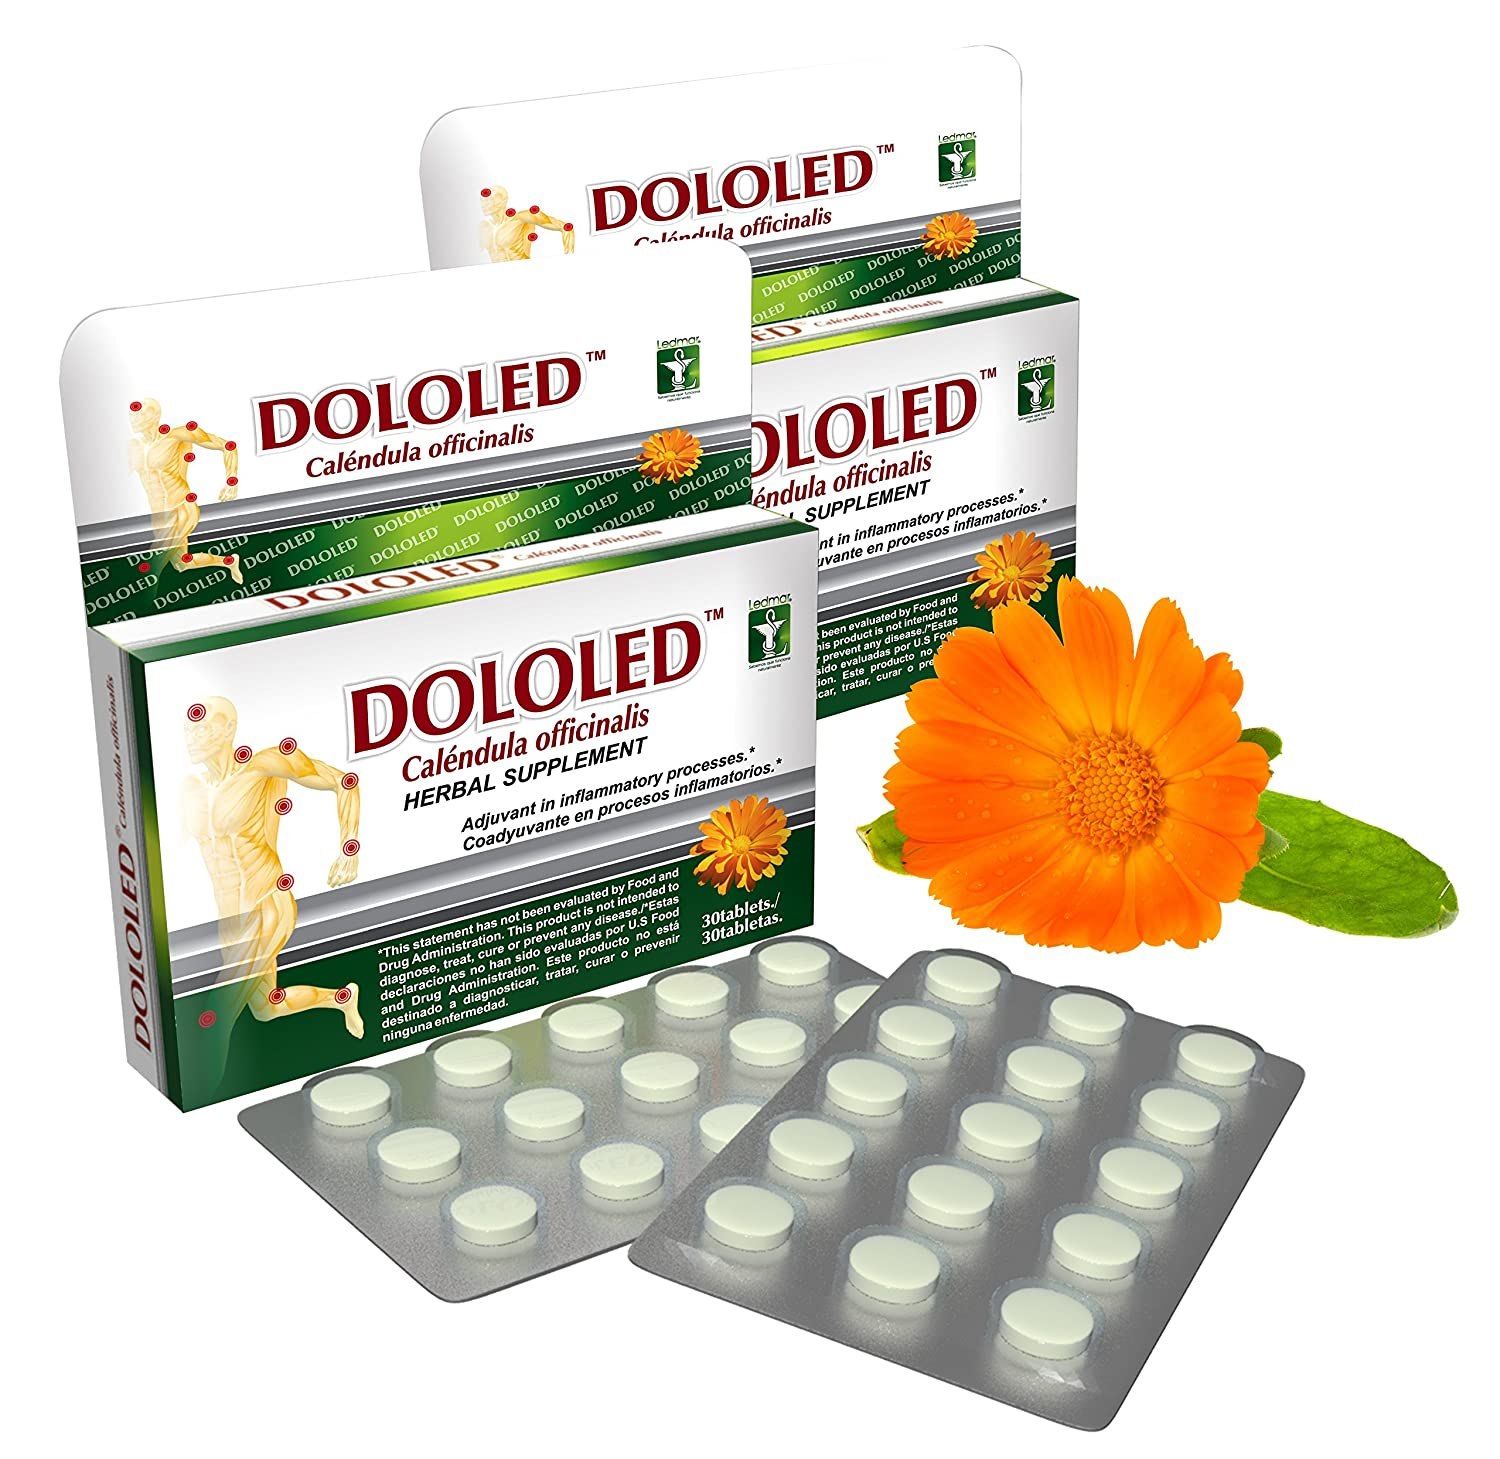 Amazon.com: DOLOLED Calendula Officinalis 2 Pack (30 Tablets, Total 60 Tablets) 150 mg Each Tablet, for All Types of Pain, Anti-inflammatory, 100% Natural, ...